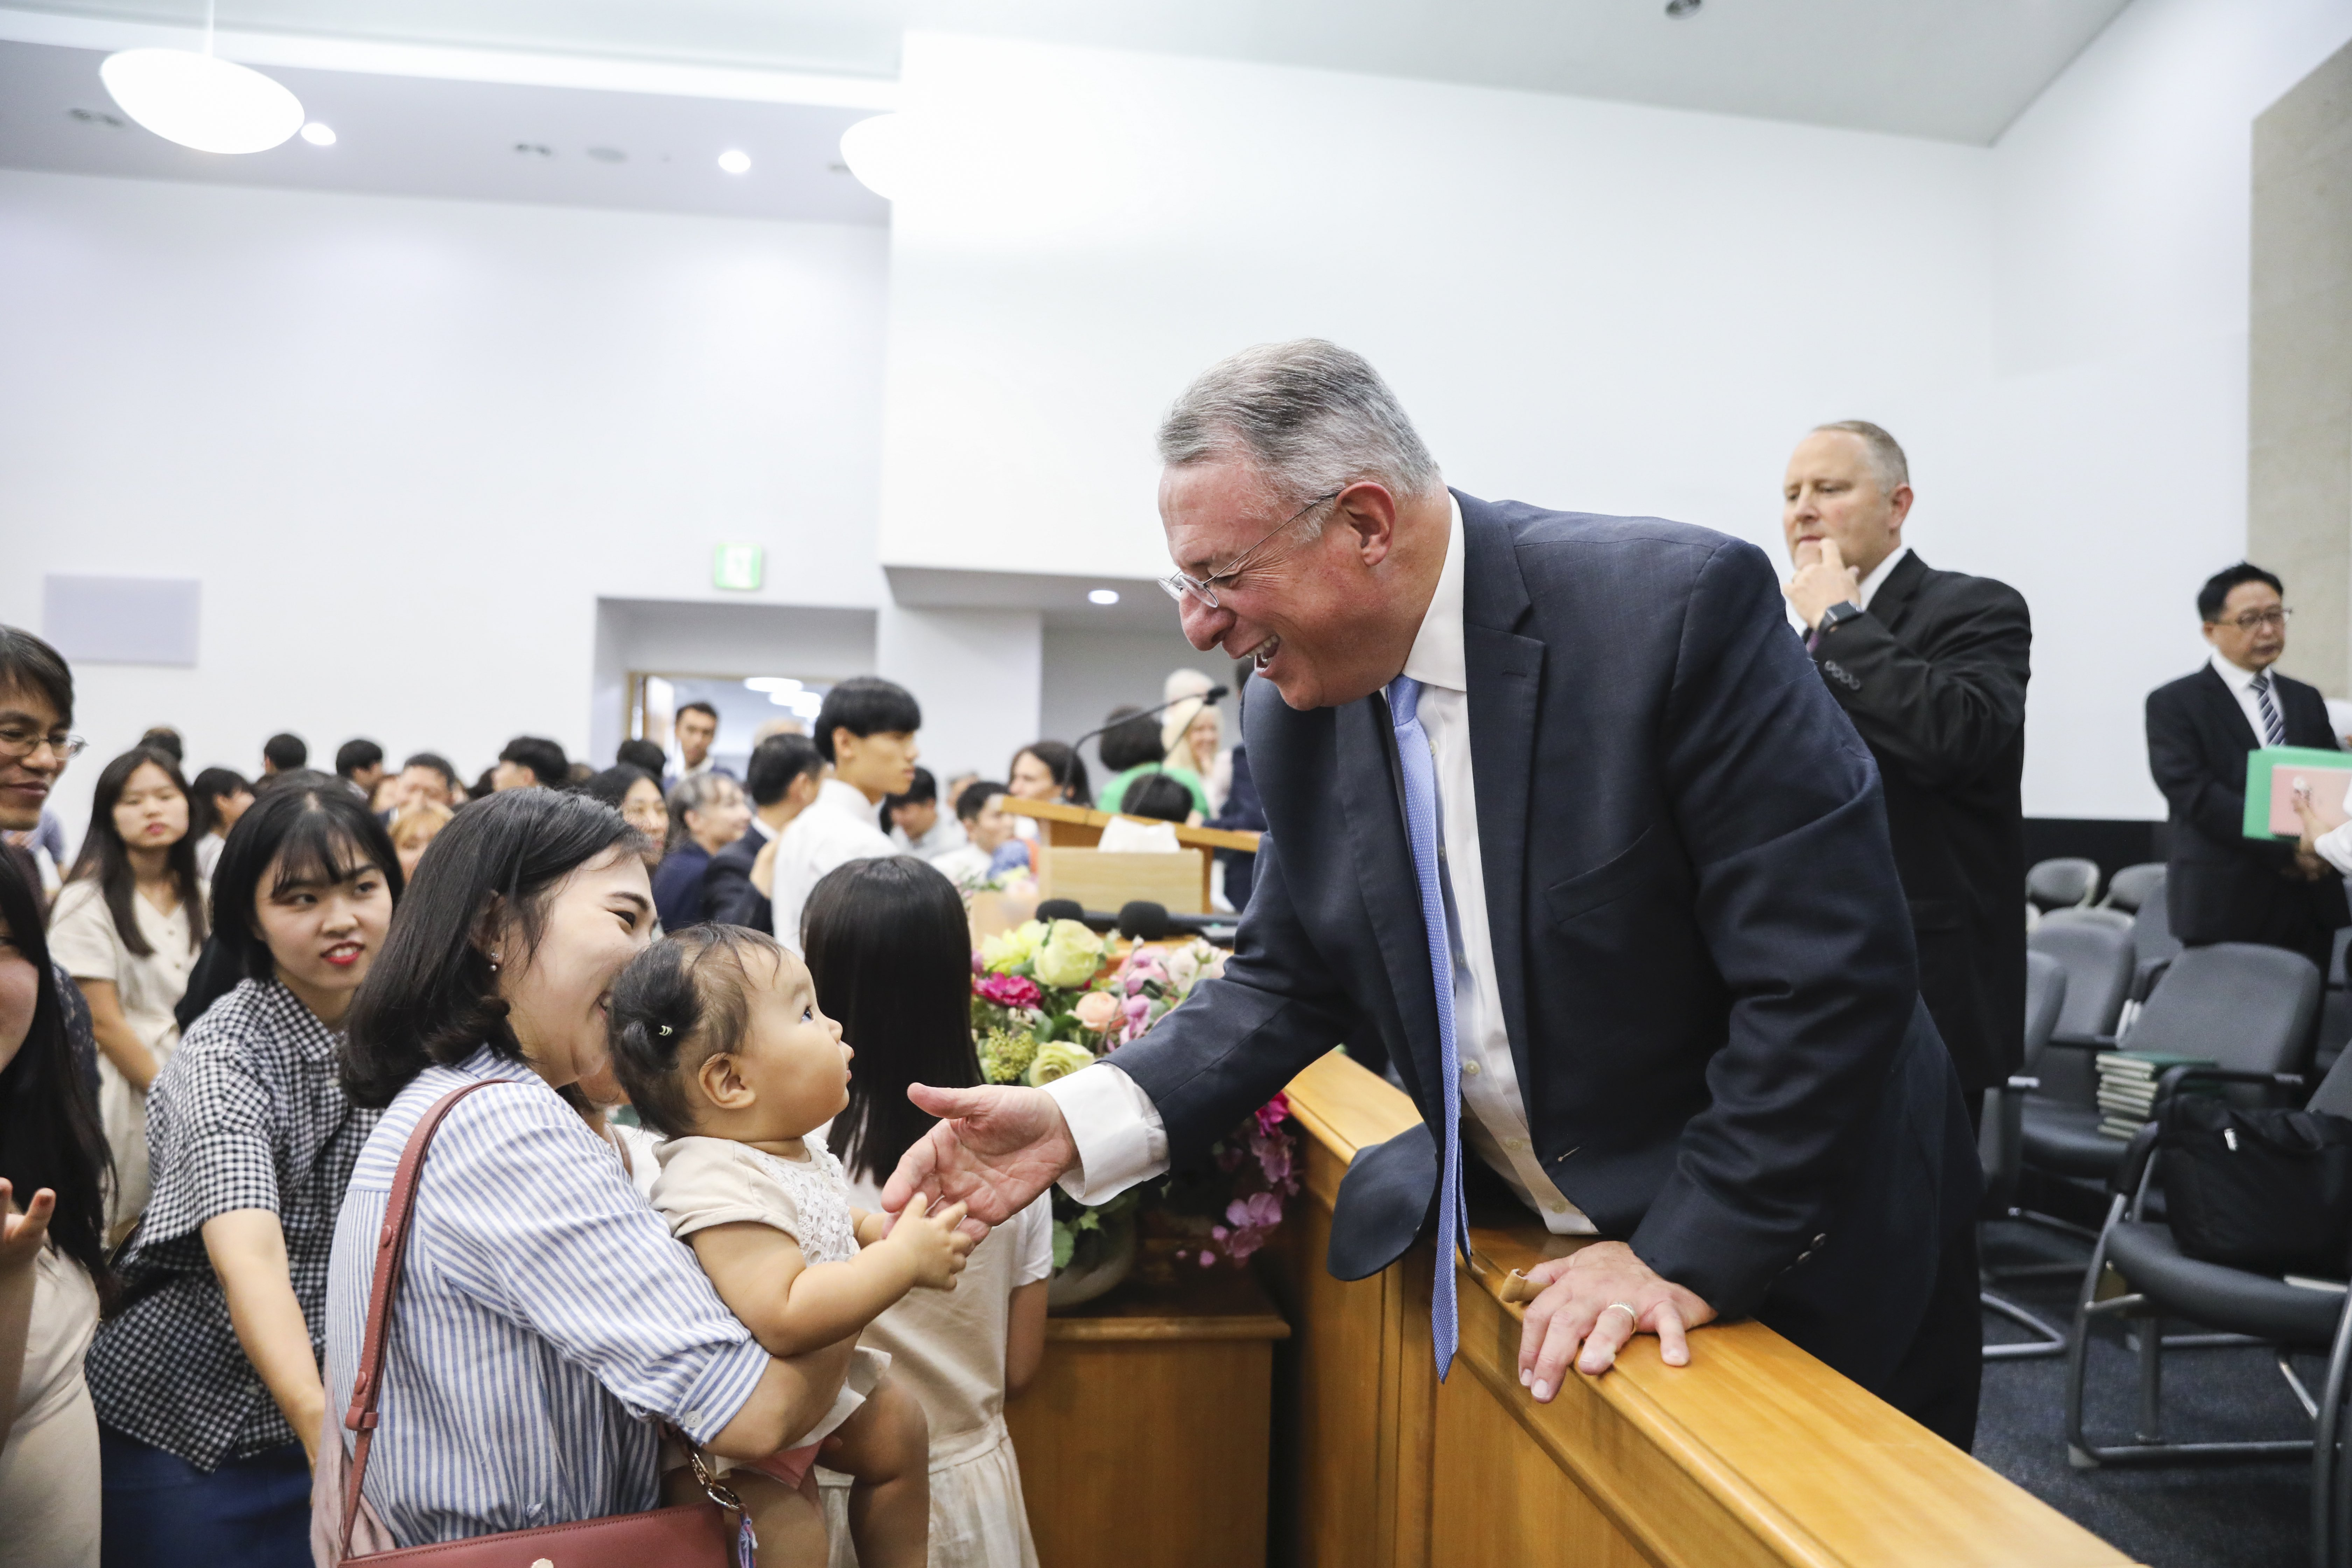 Elder Ulisses Soares greets members after a nationwide member broadcast in Seoul, South Korea, on Sunday, Aug. 25, 2019.